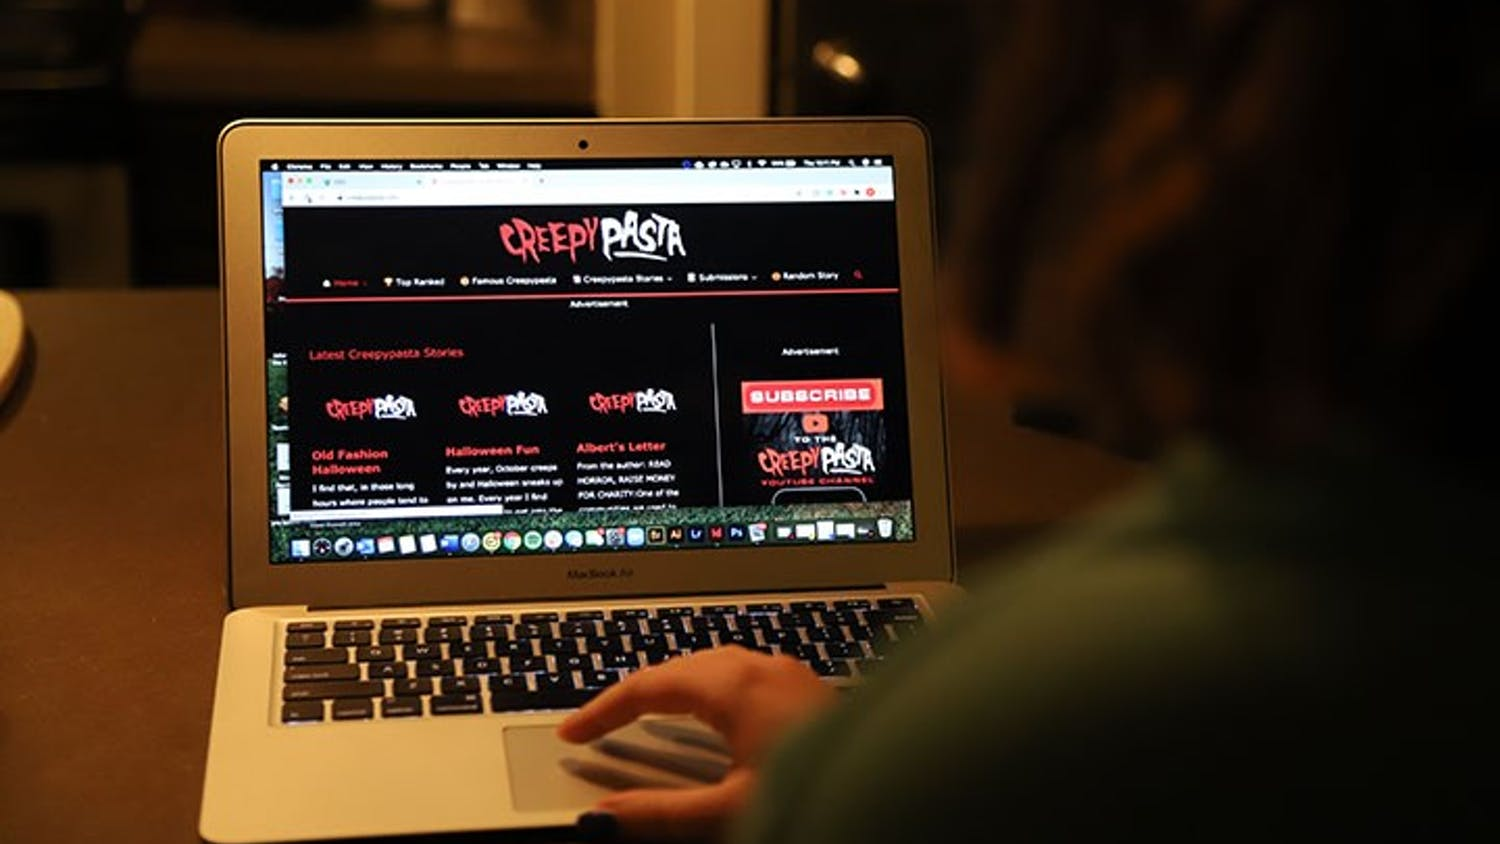 A person at a computer while it is displaying the Creepypasta website. Creepypasta is a horror story website where writers can post stories and receive feedback from their audience.